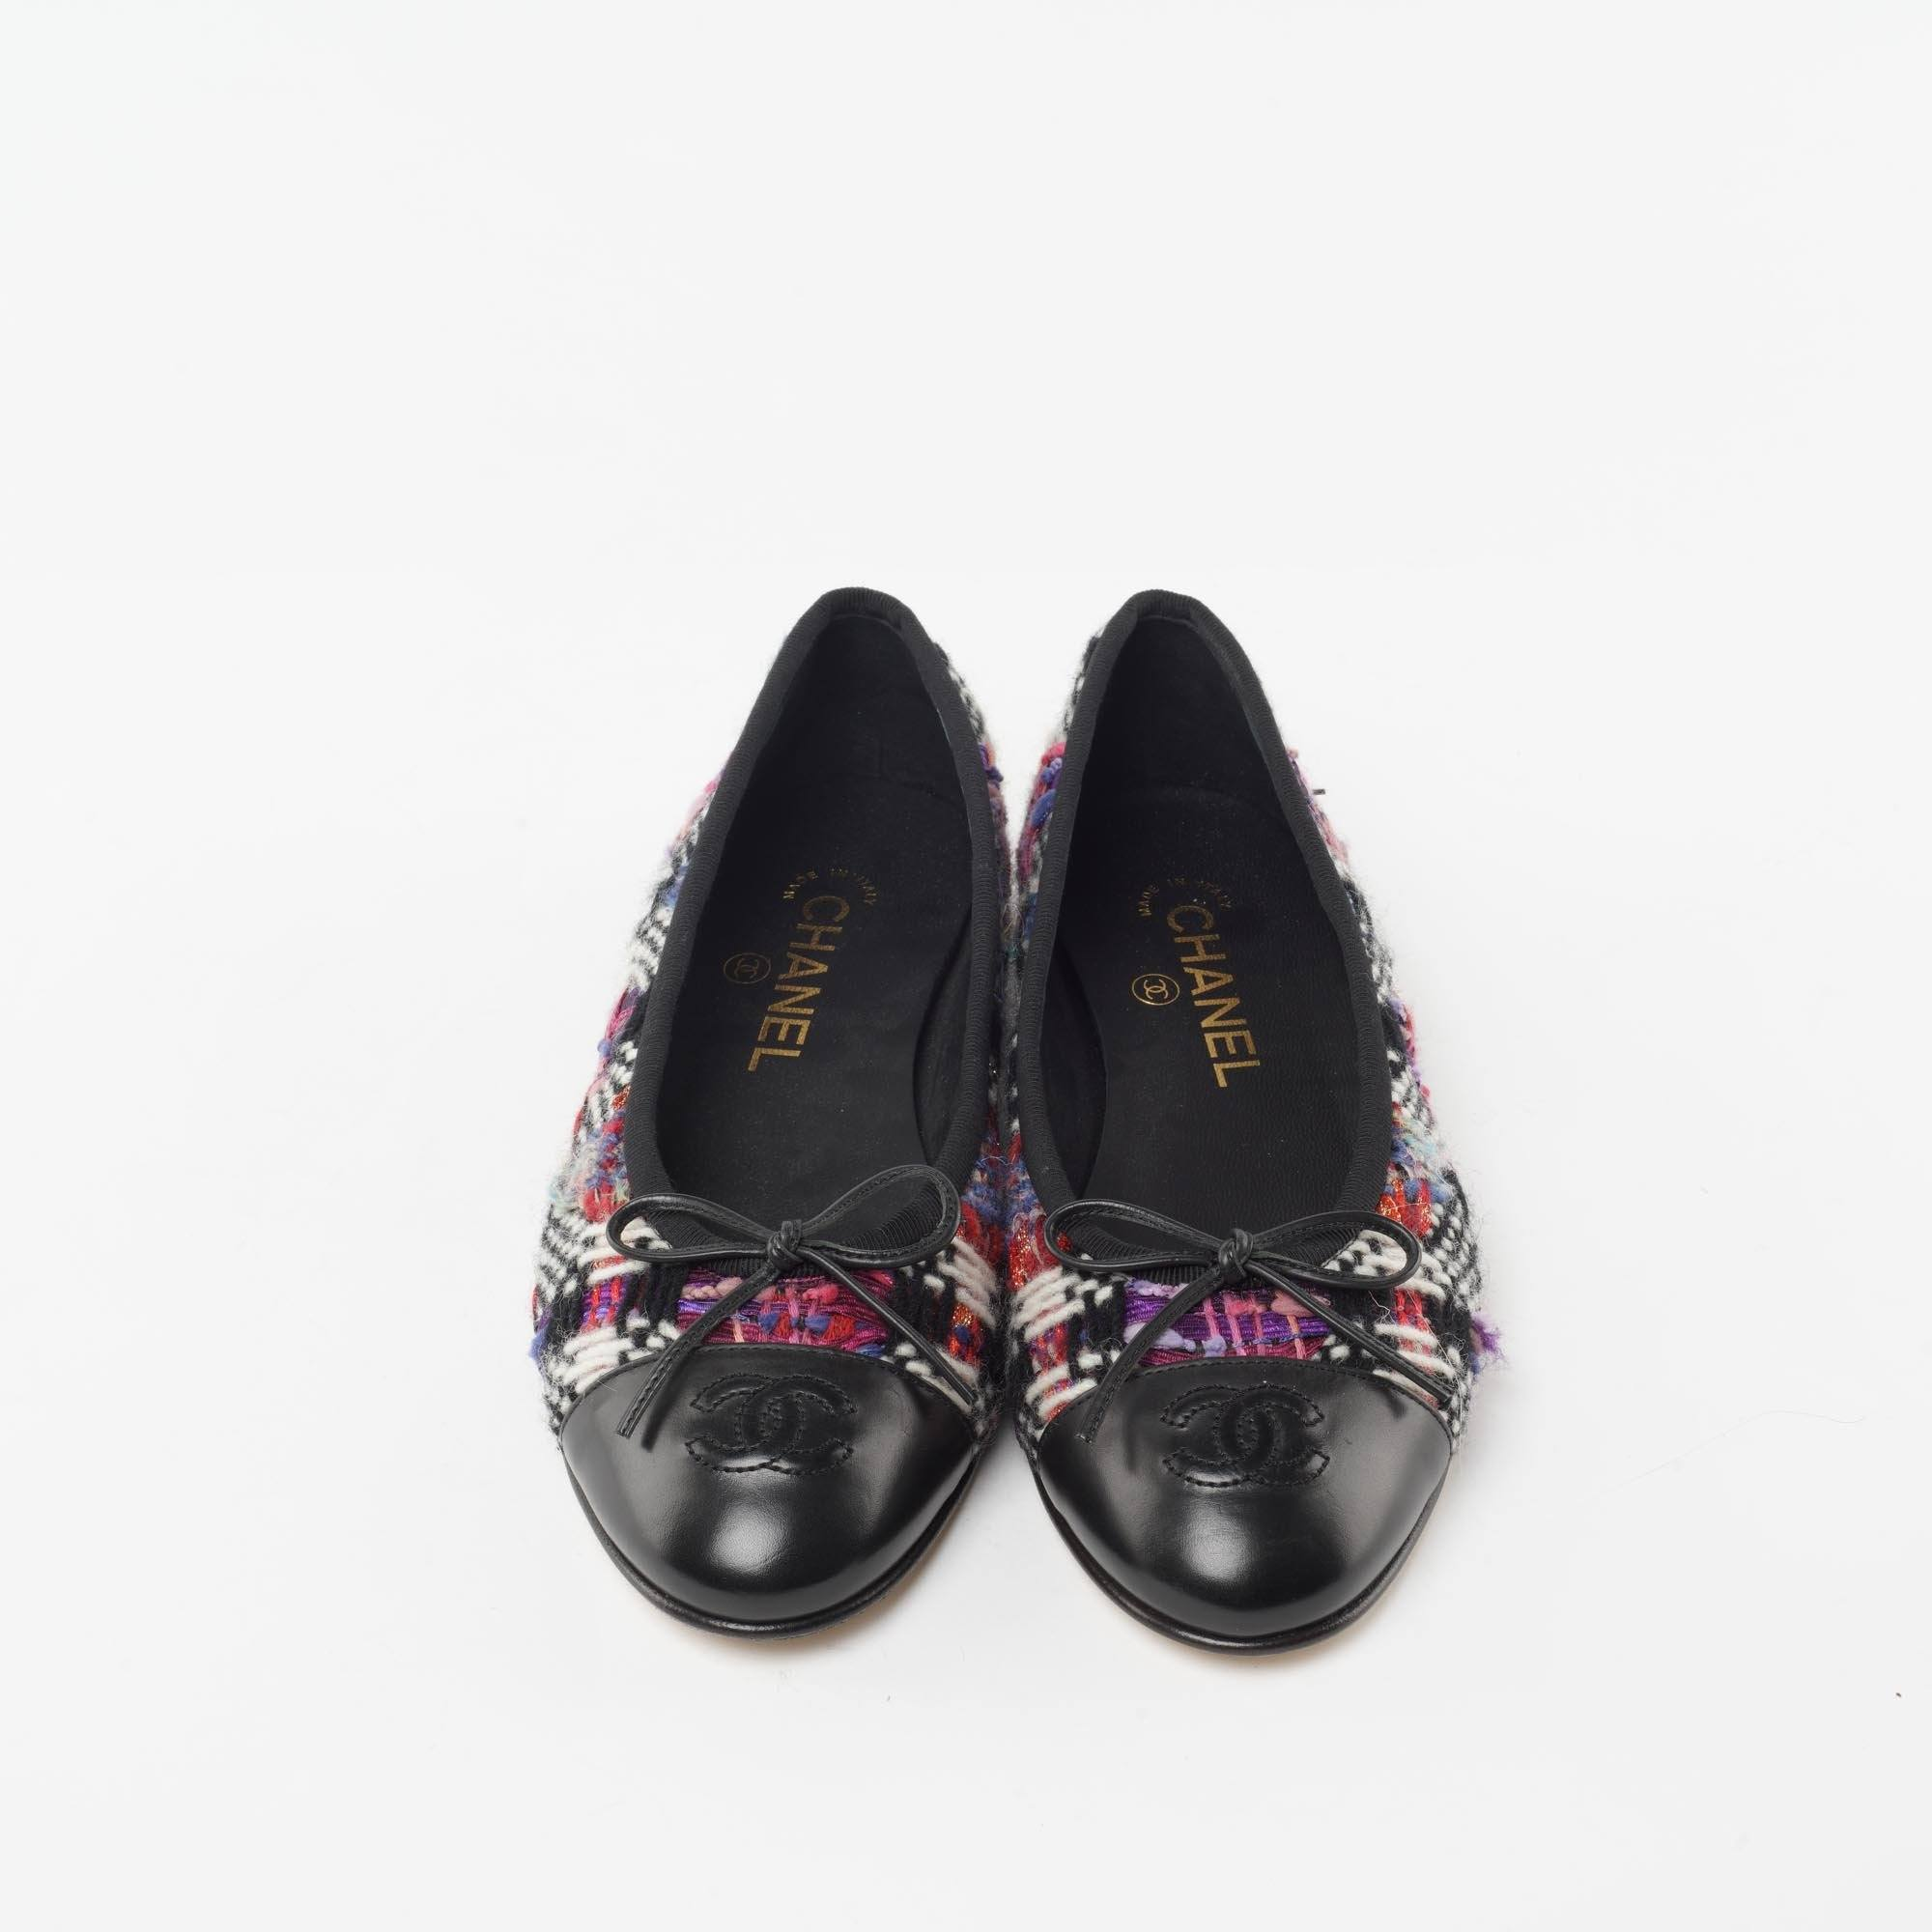 Chanel Tweed Ballerina Flats